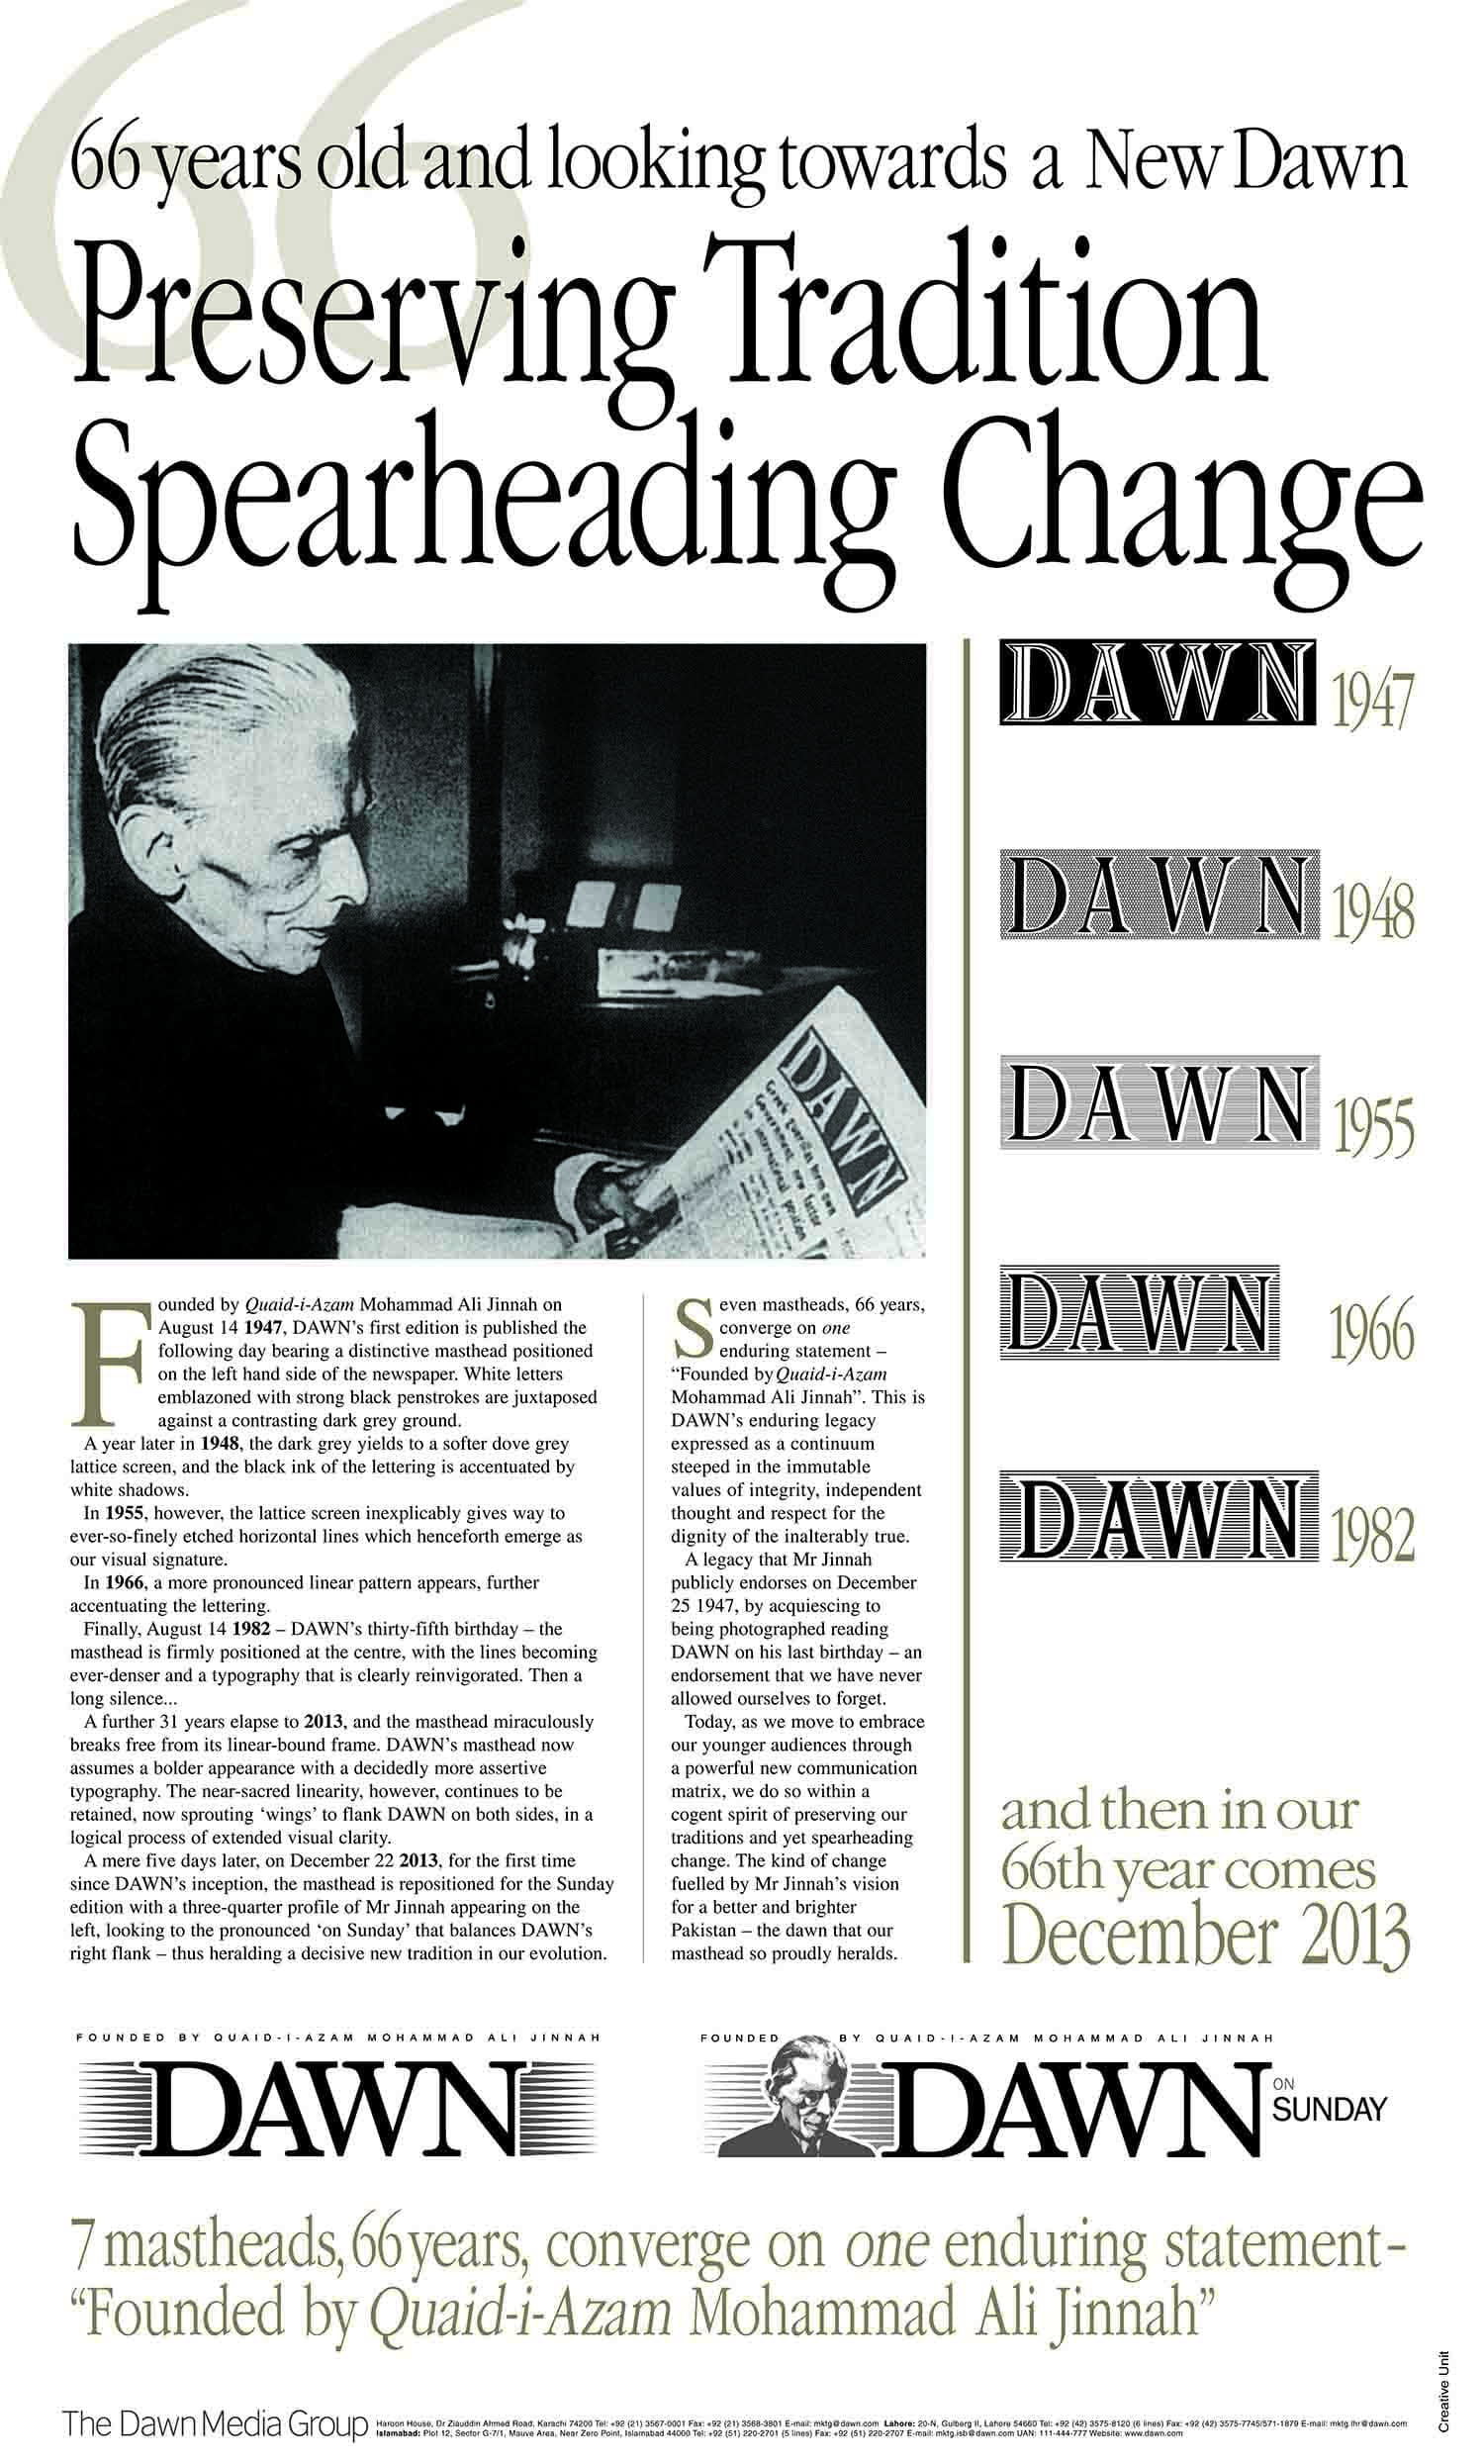 Dawn: Preserving Heritage, Spearheading Change - Winner of the PAS Award in the Best in Media Category (2014)